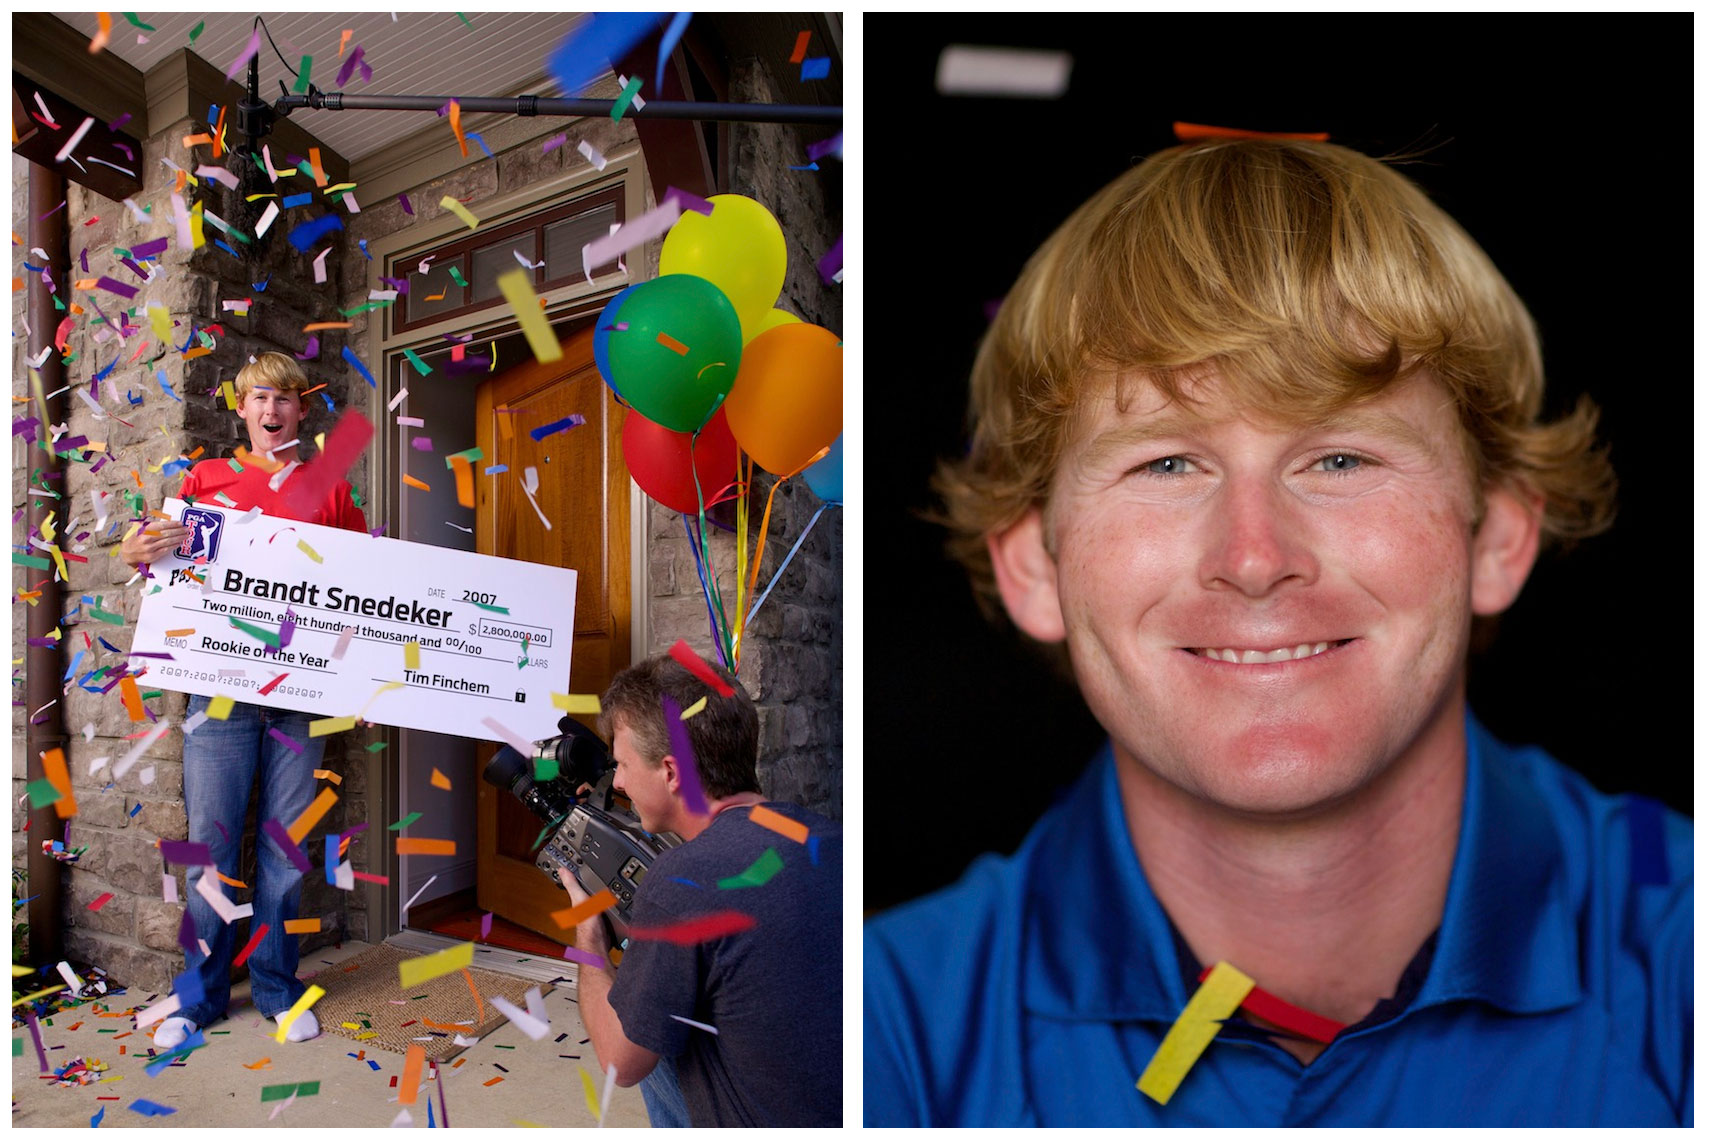 Brandt Snedeker Location Portrait for Golf Digest Rookie of the Year